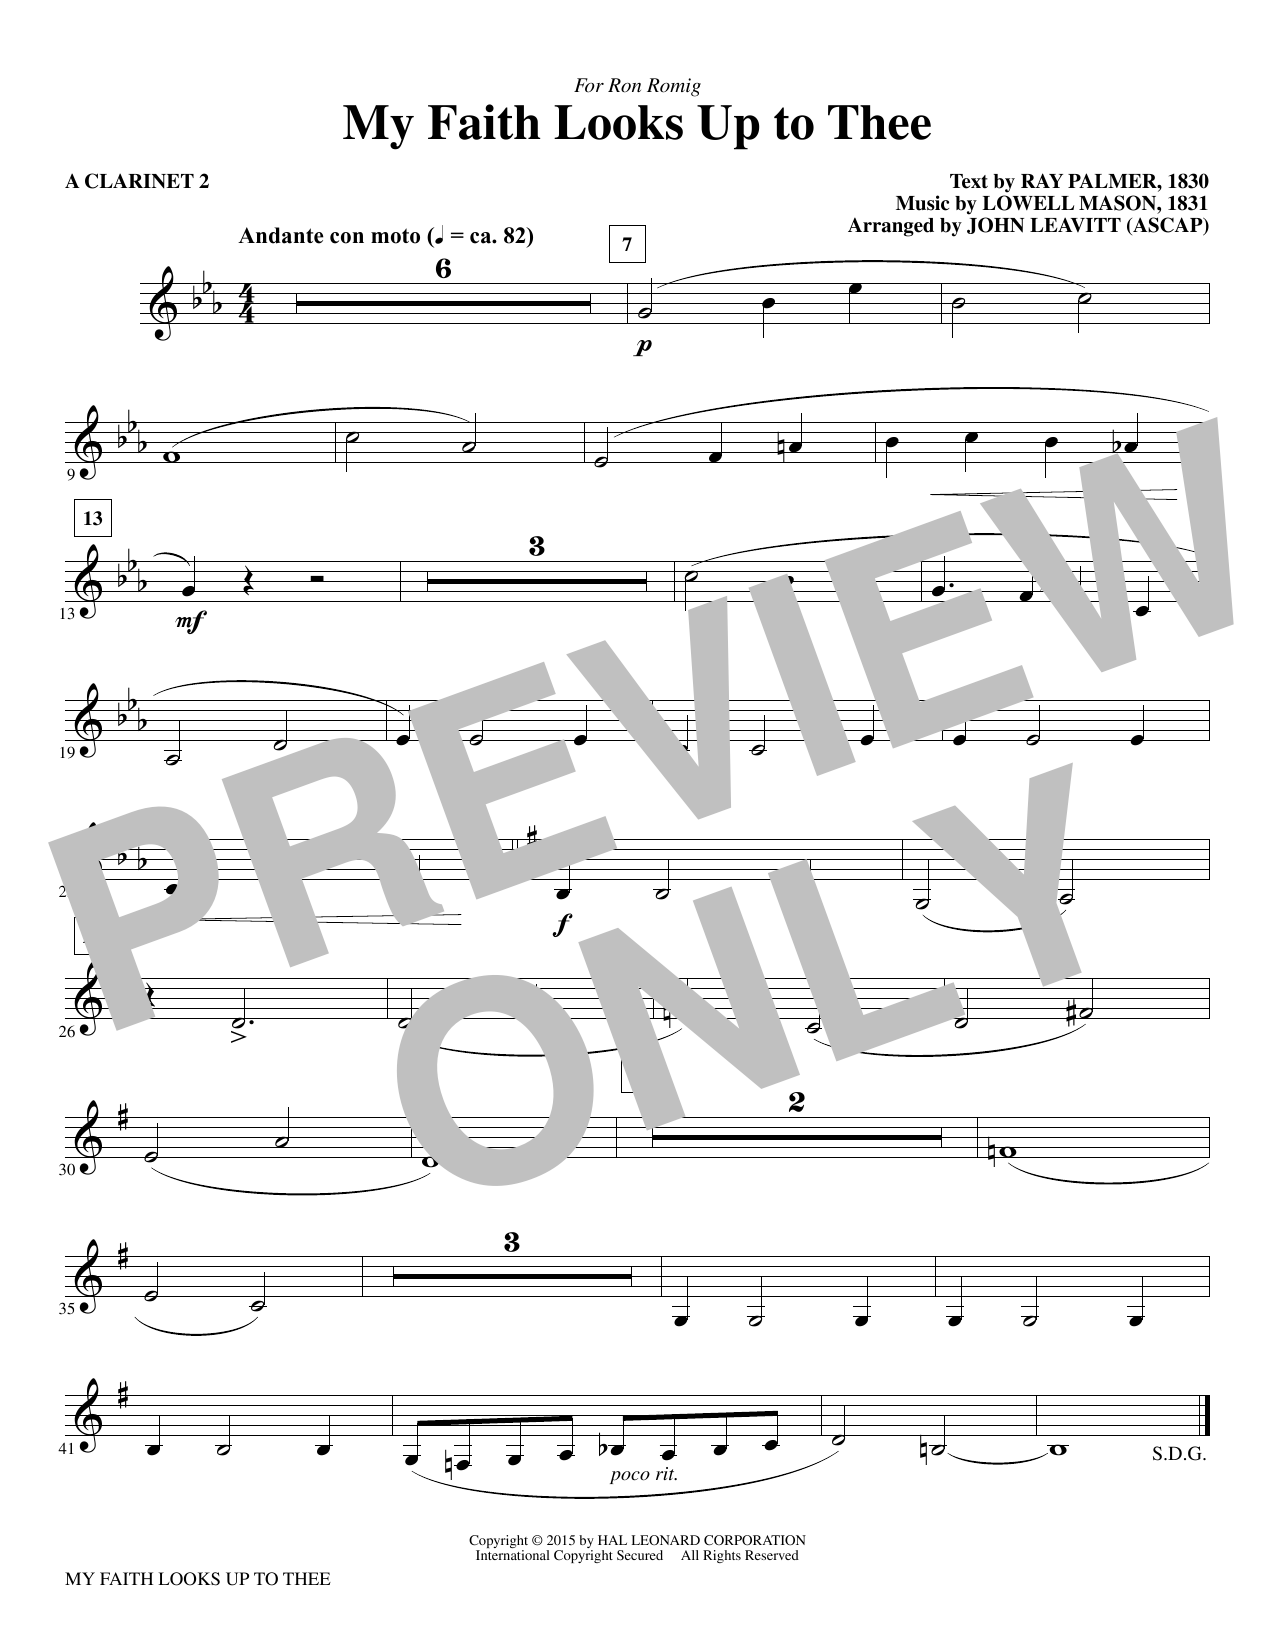 My Faith Looks Up To Thee - A Clarinet 2 sheet music